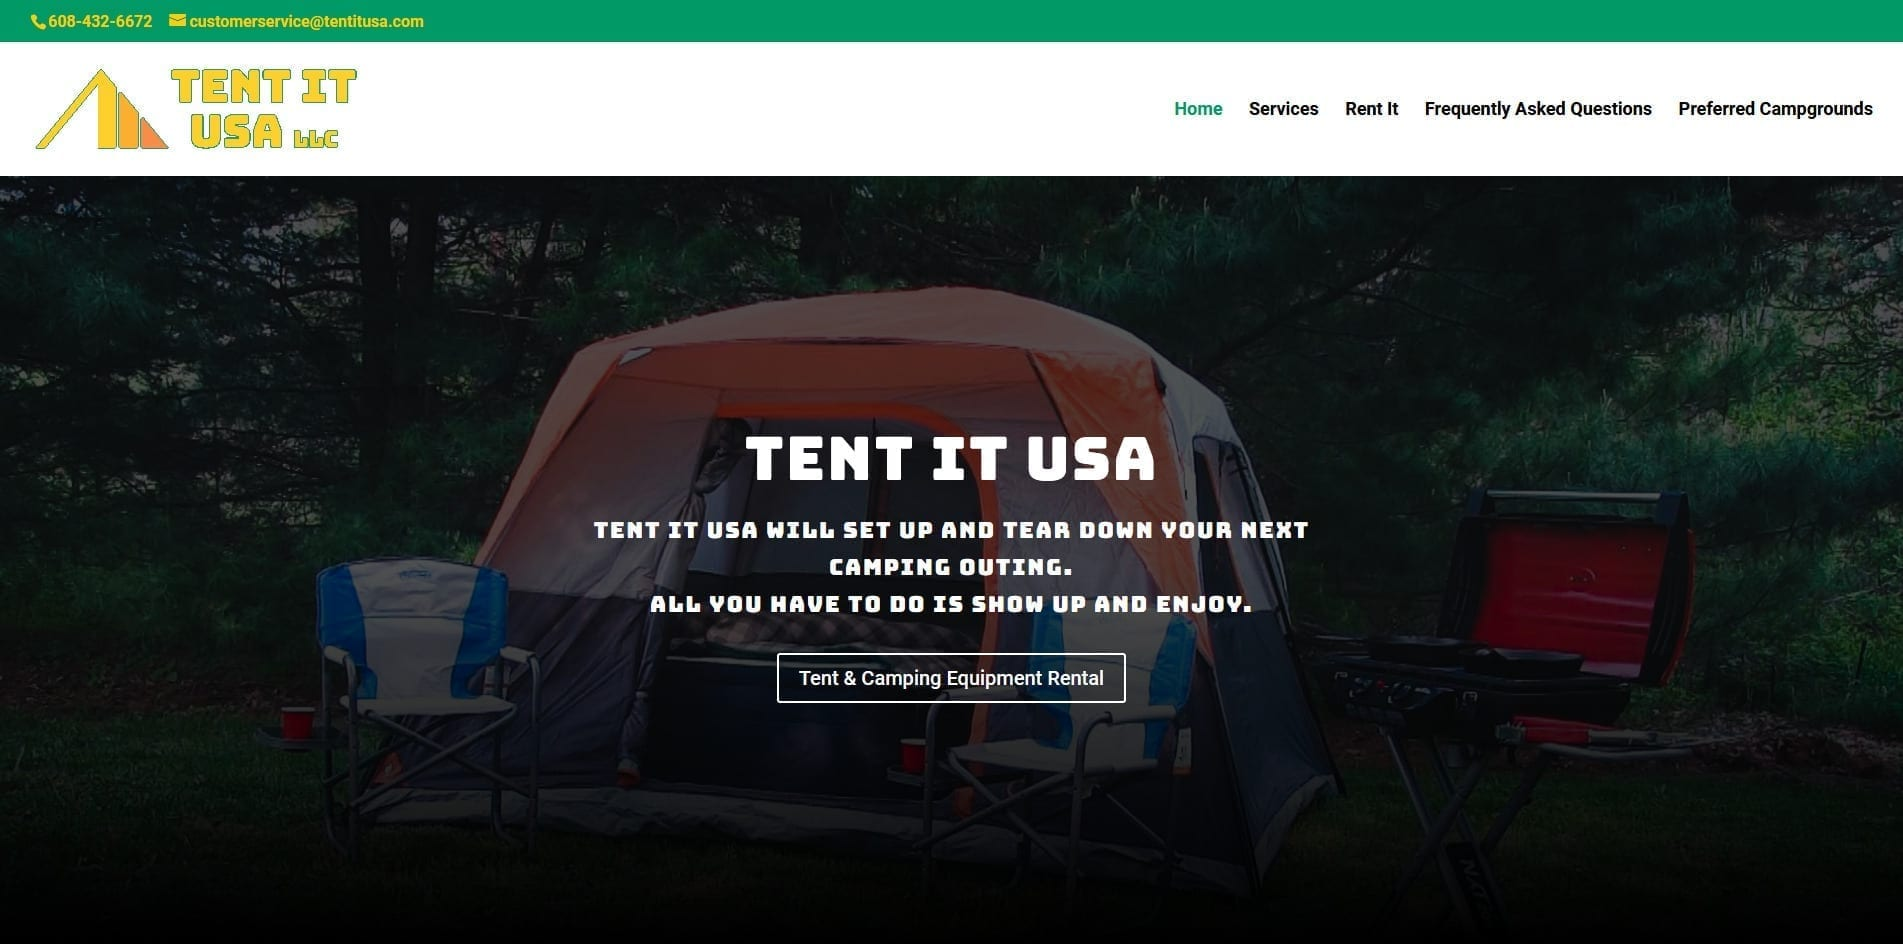 Screenshot of Tent It USA LLC website design - They offer camping equipment which you rent and they setup and break down.